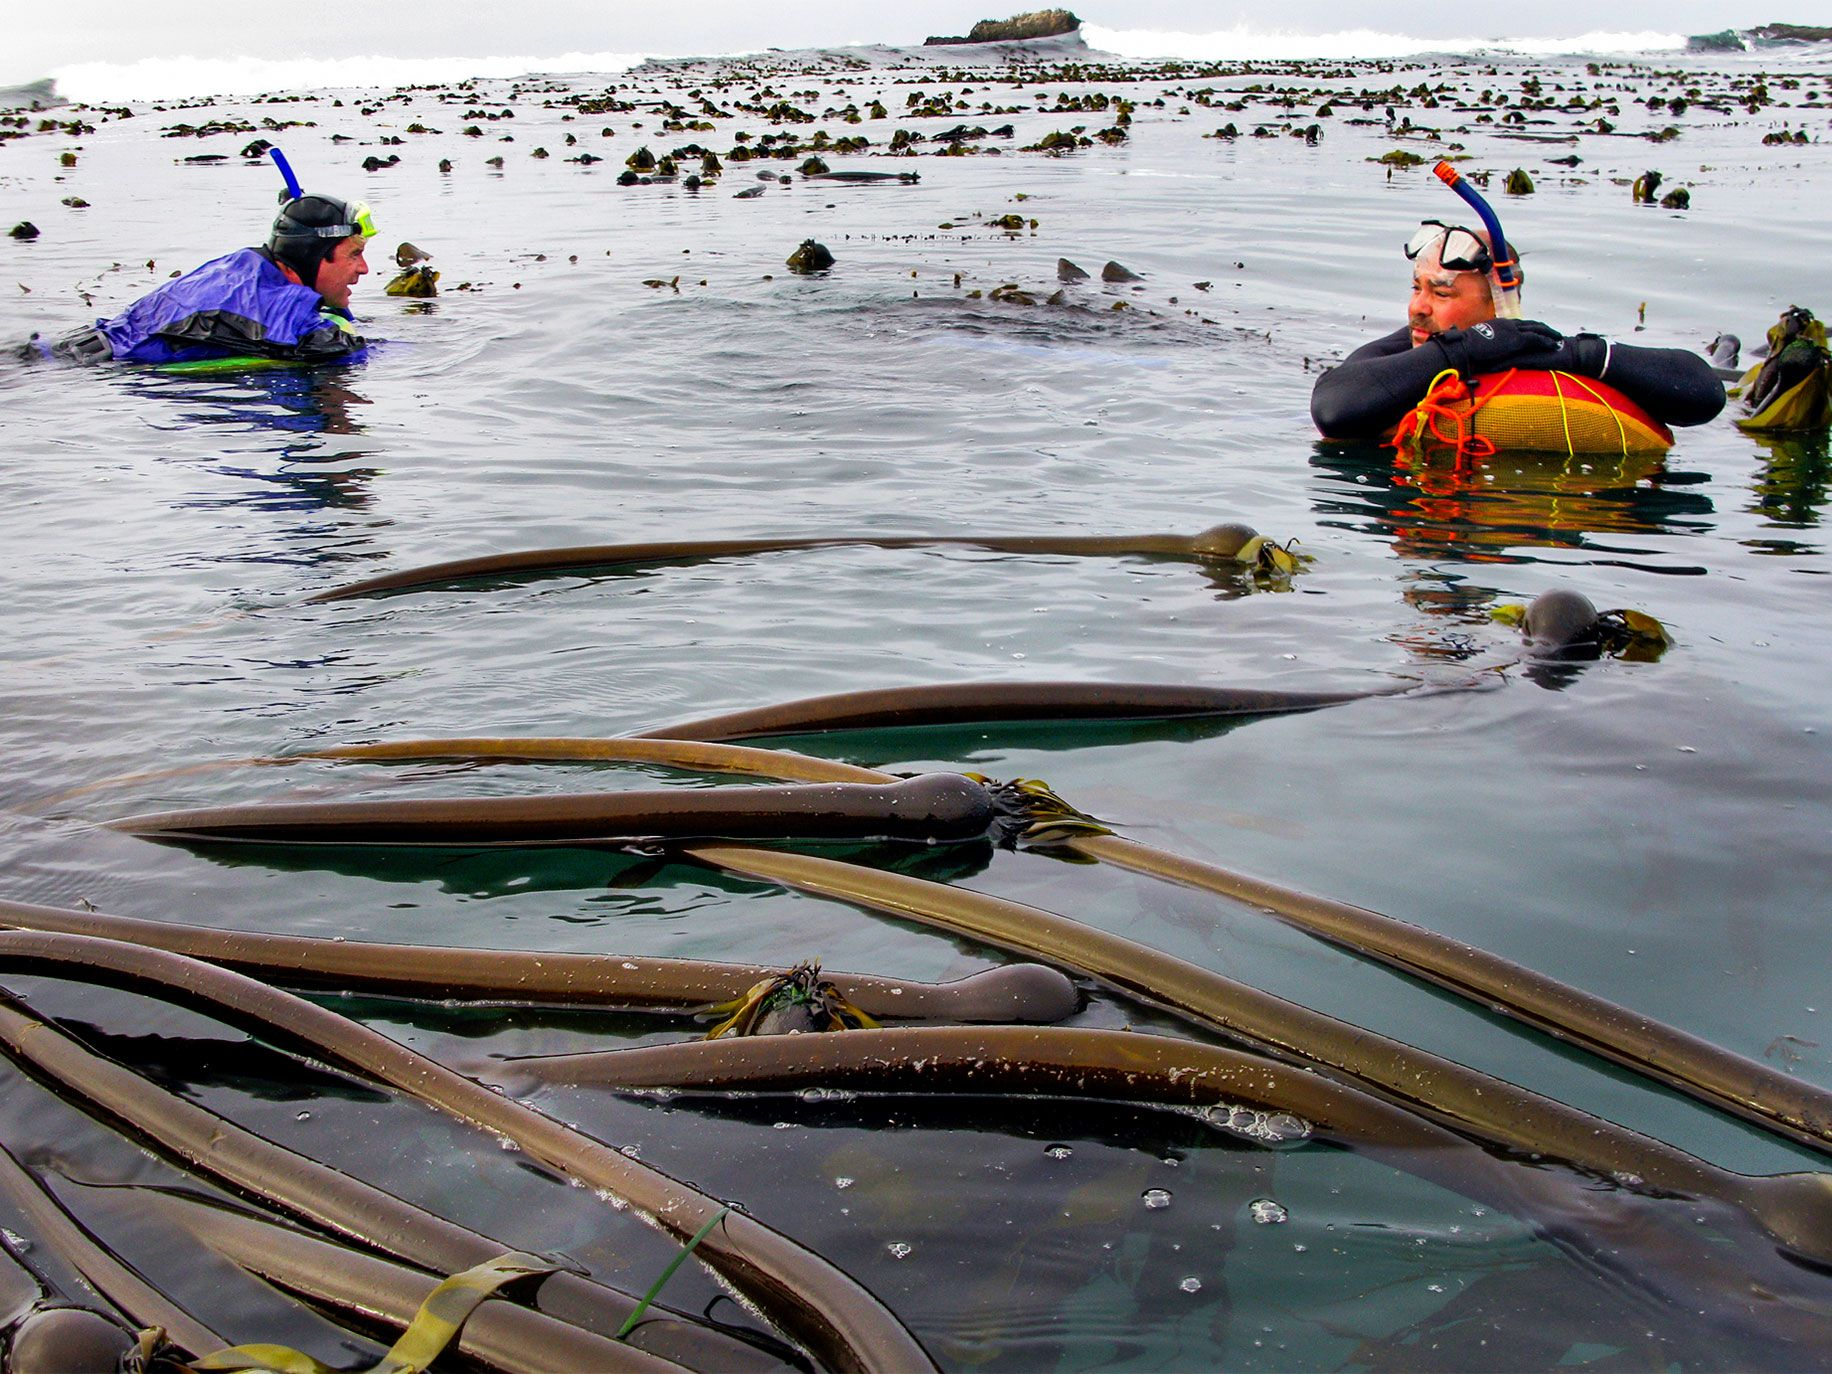 Prior to the ban on diving for abalone, divers would look for the shellfish in the kelp-filled waters of places like Van Damme State Park in Mendocino County.